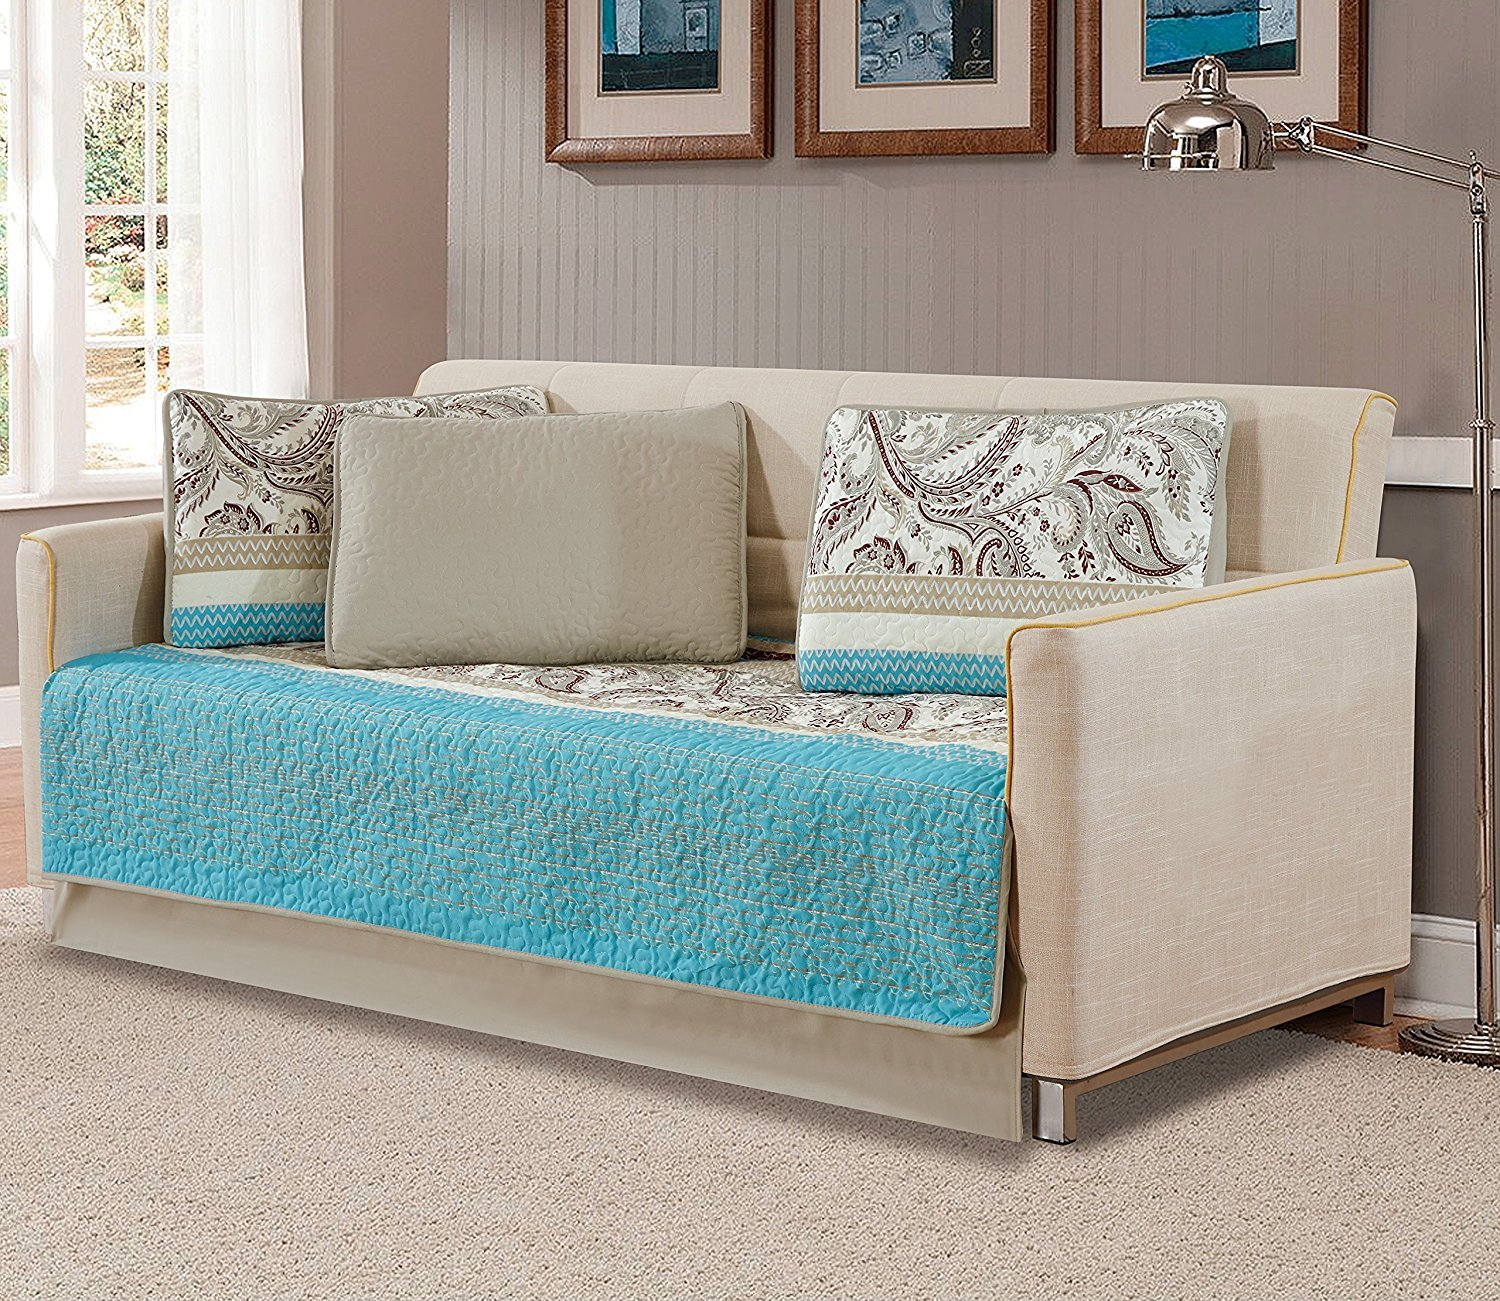 Linen Plus 5pc Daybed Cover Set Quilted Bedspread Floral Stripped Teal Taupe Off White